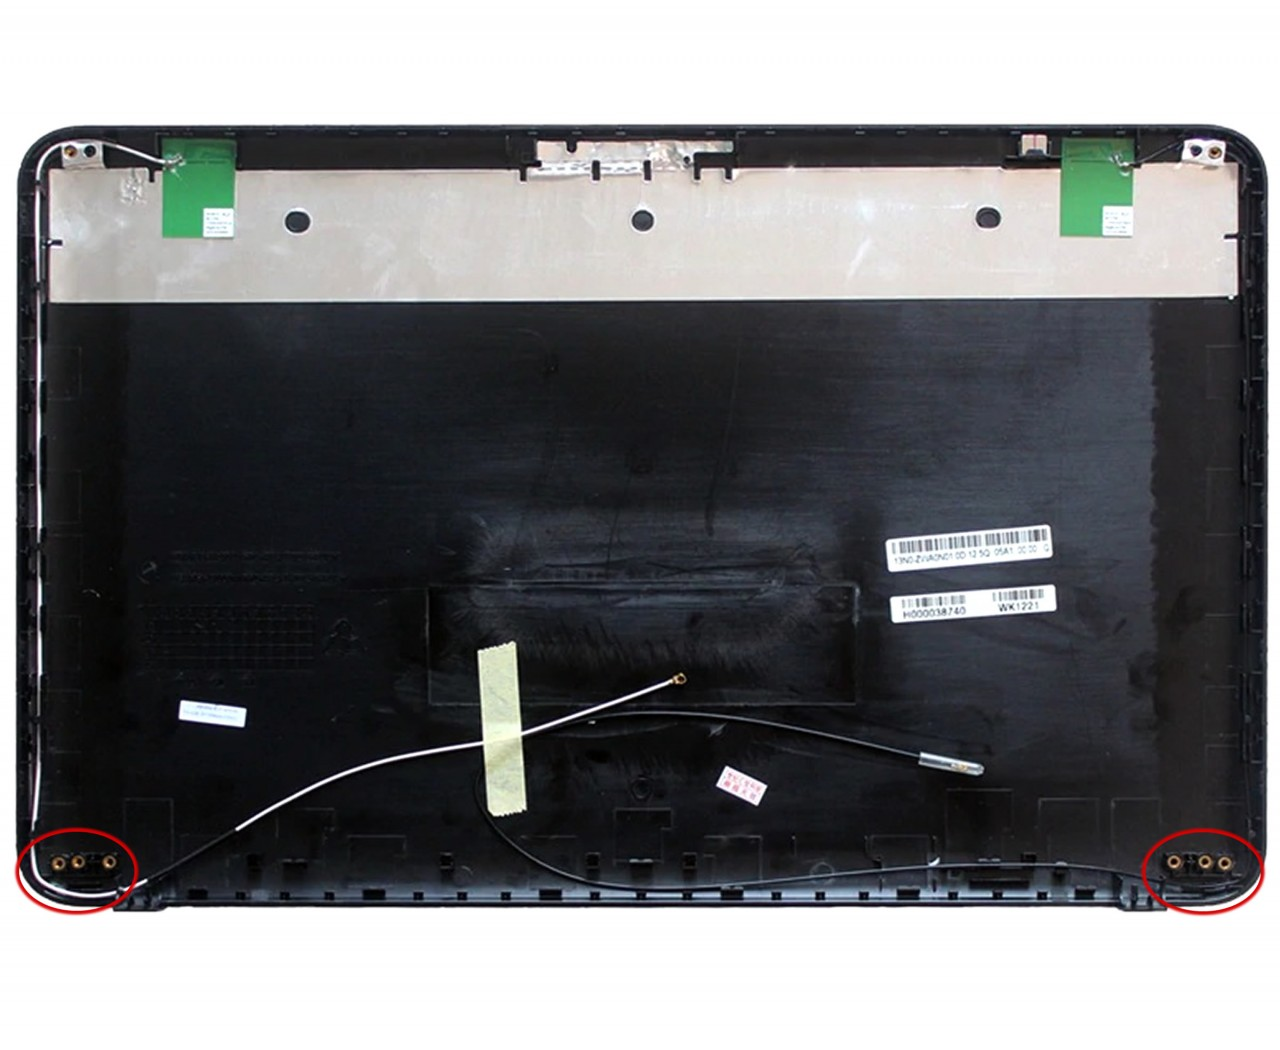 Capac Display BackCover Toshiba Satellite L850 Carcasa Display Neagra cu 3 Suruburi Balamale imagine powerlaptop.ro 2021